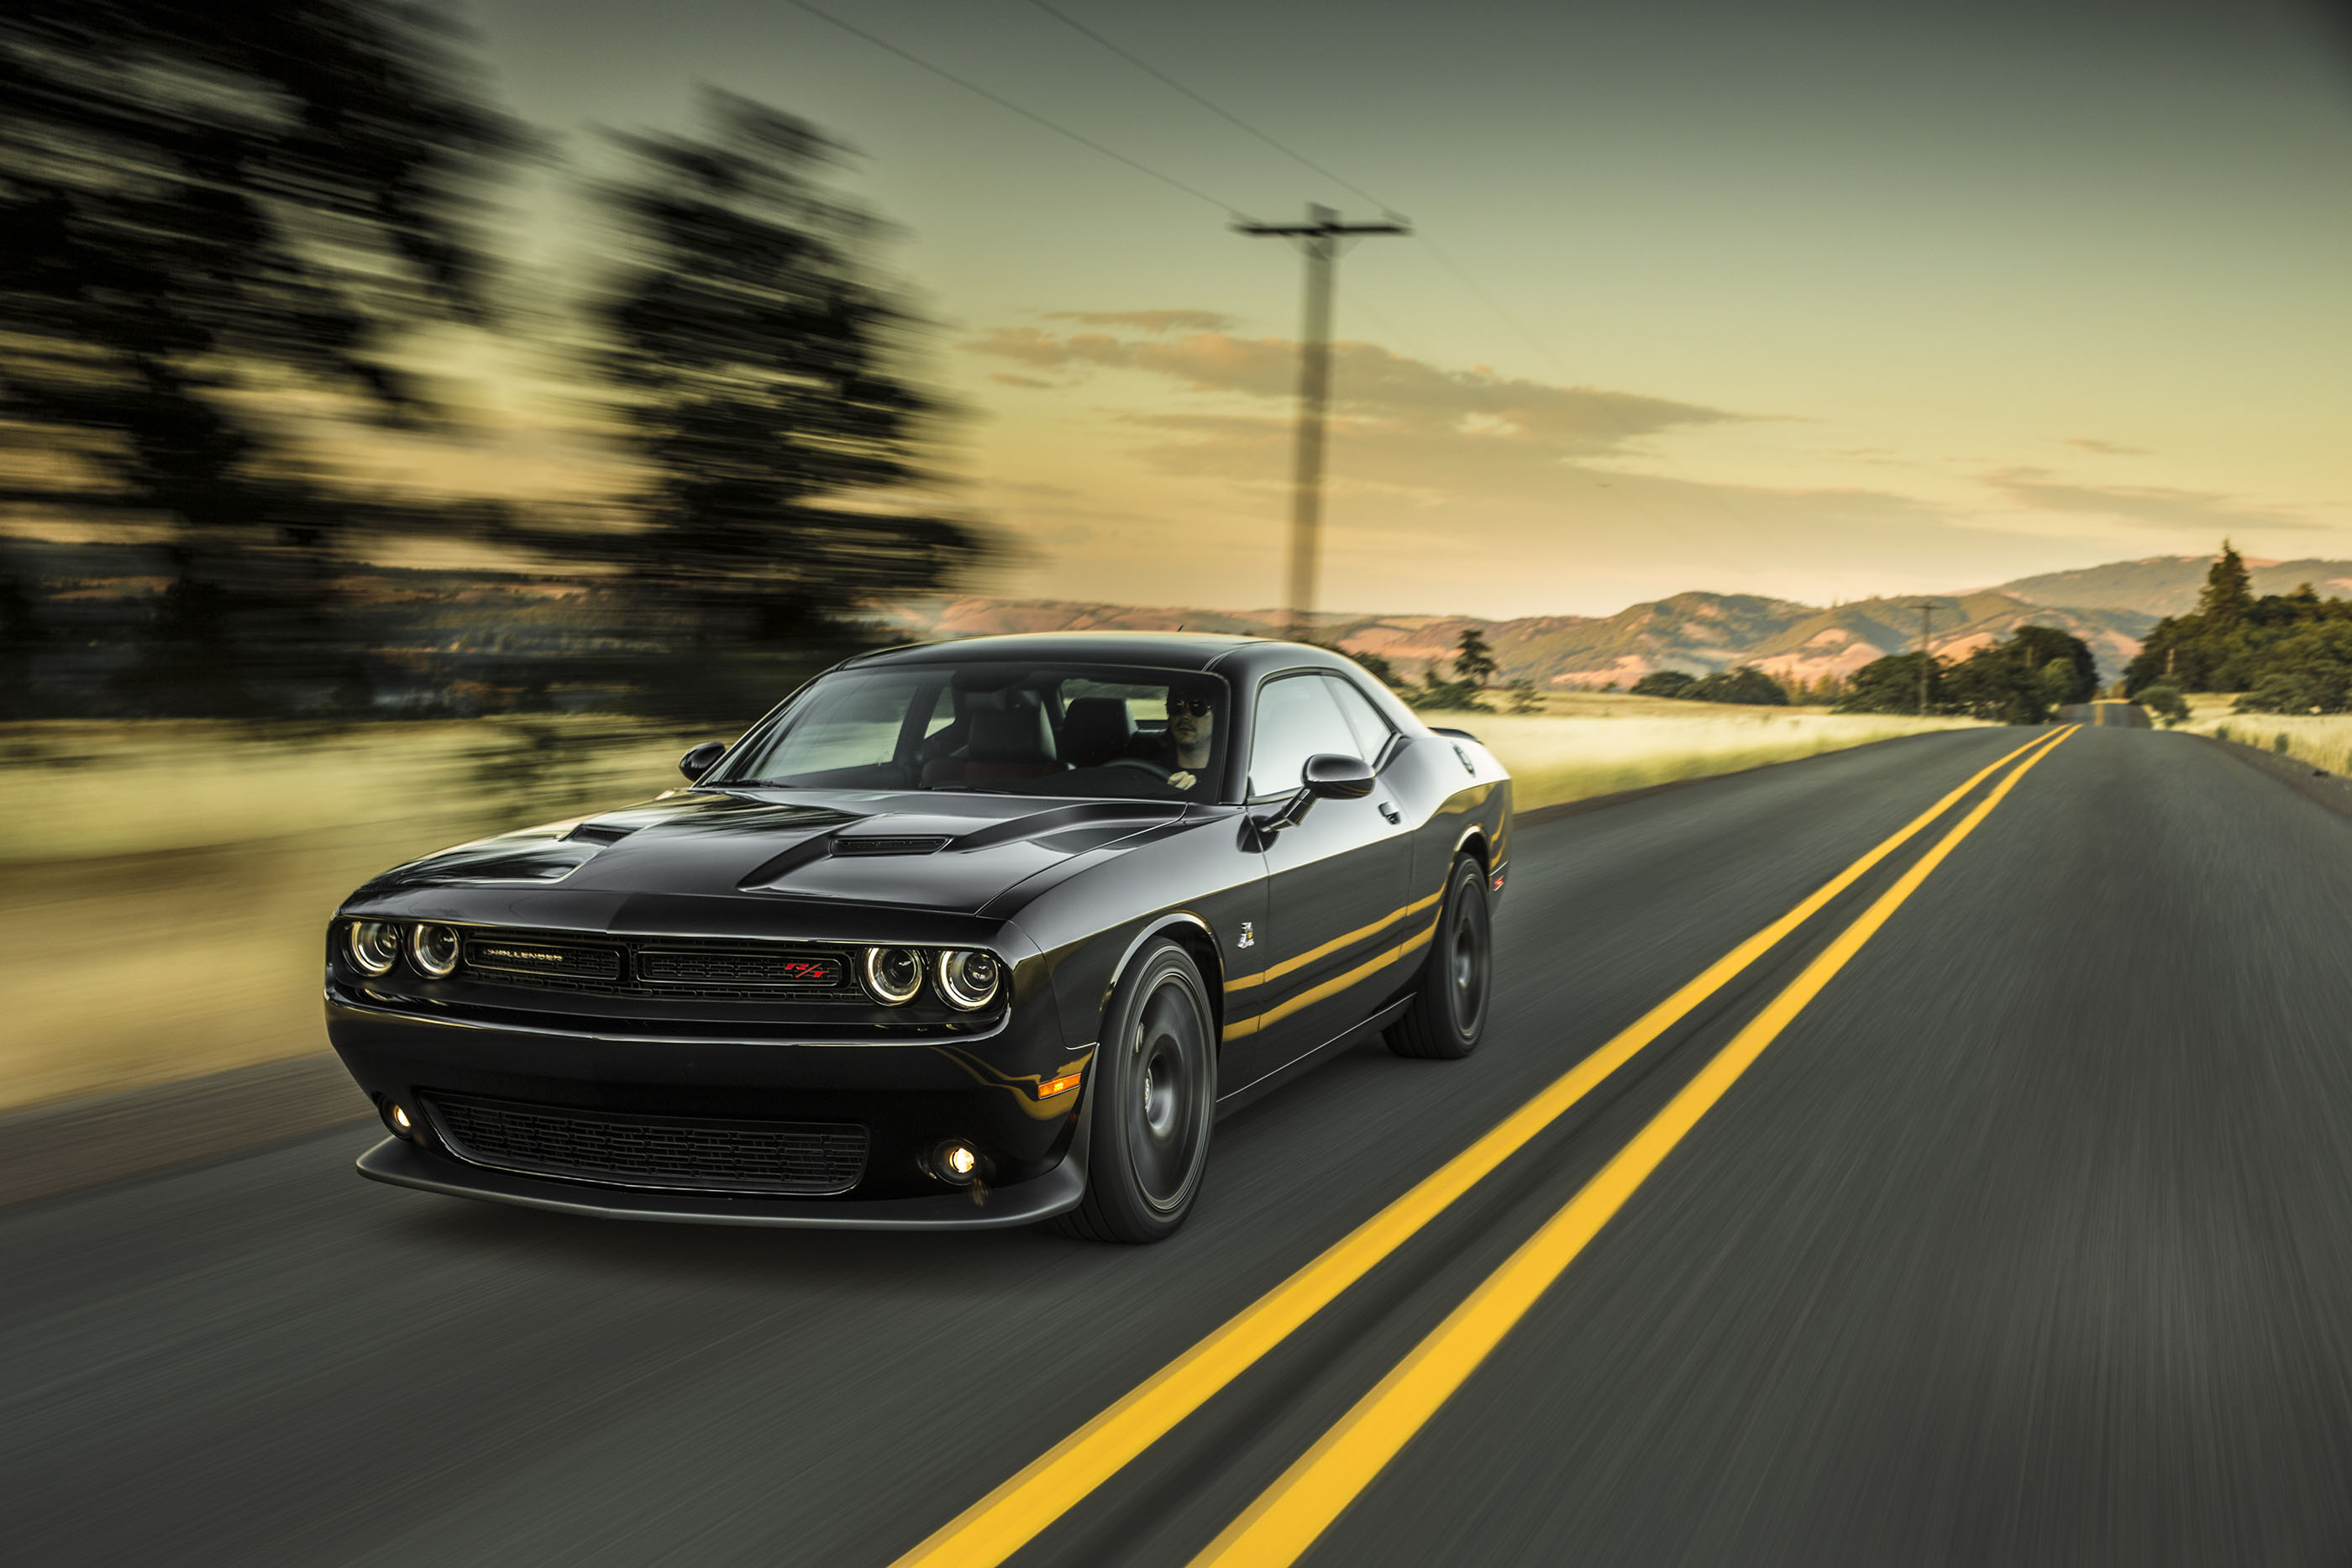 2017 Dodge Challenger Preview HD Wallpapers Download free images and photos [musssic.tk]